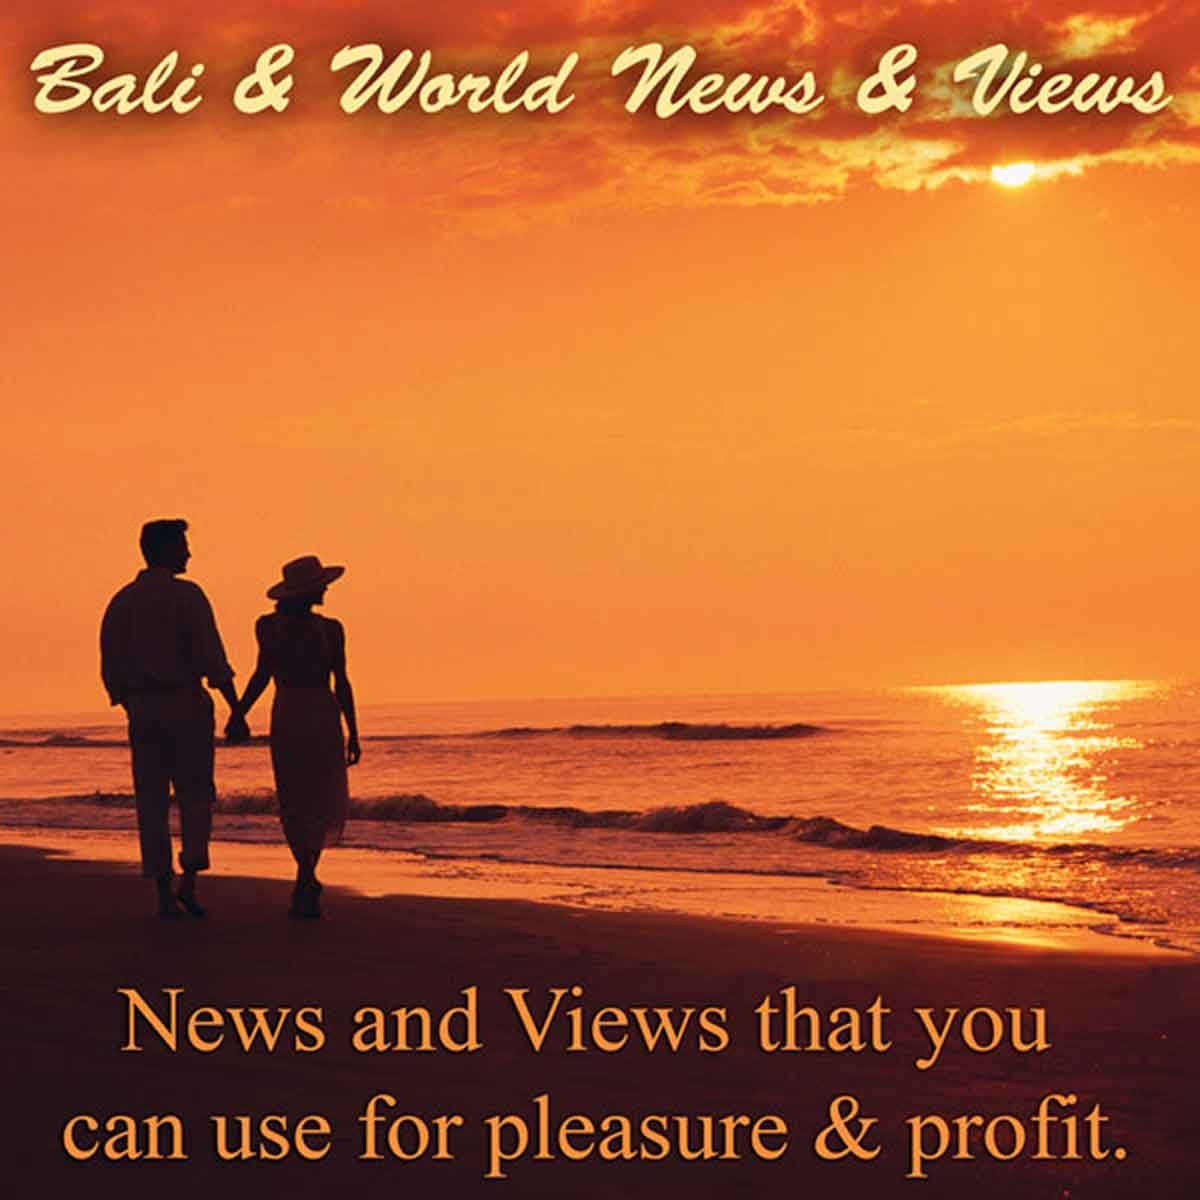 Bali & World News & Views & Bali News and Views